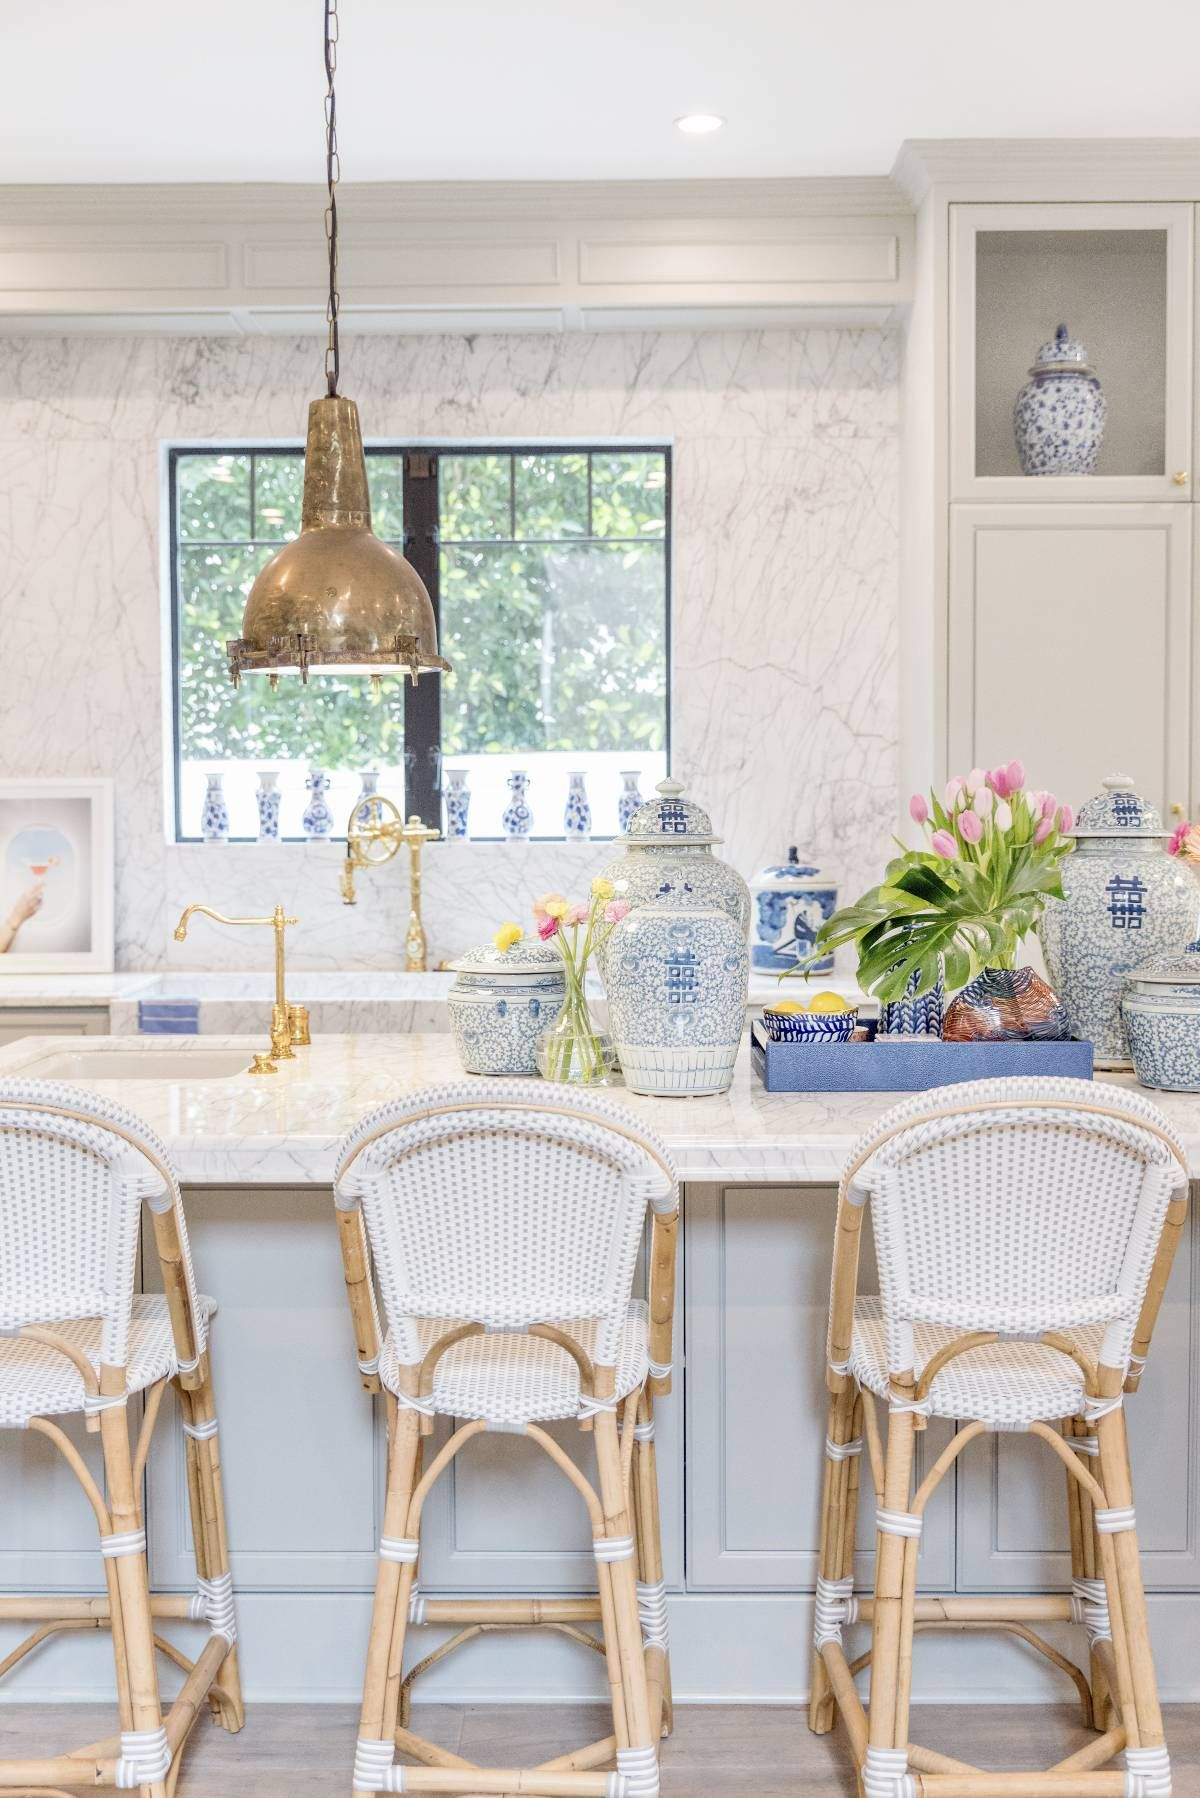 Renover Malin Exclusive Gray Malin S Stunning Kitchen Reveal Is What Dreams Are